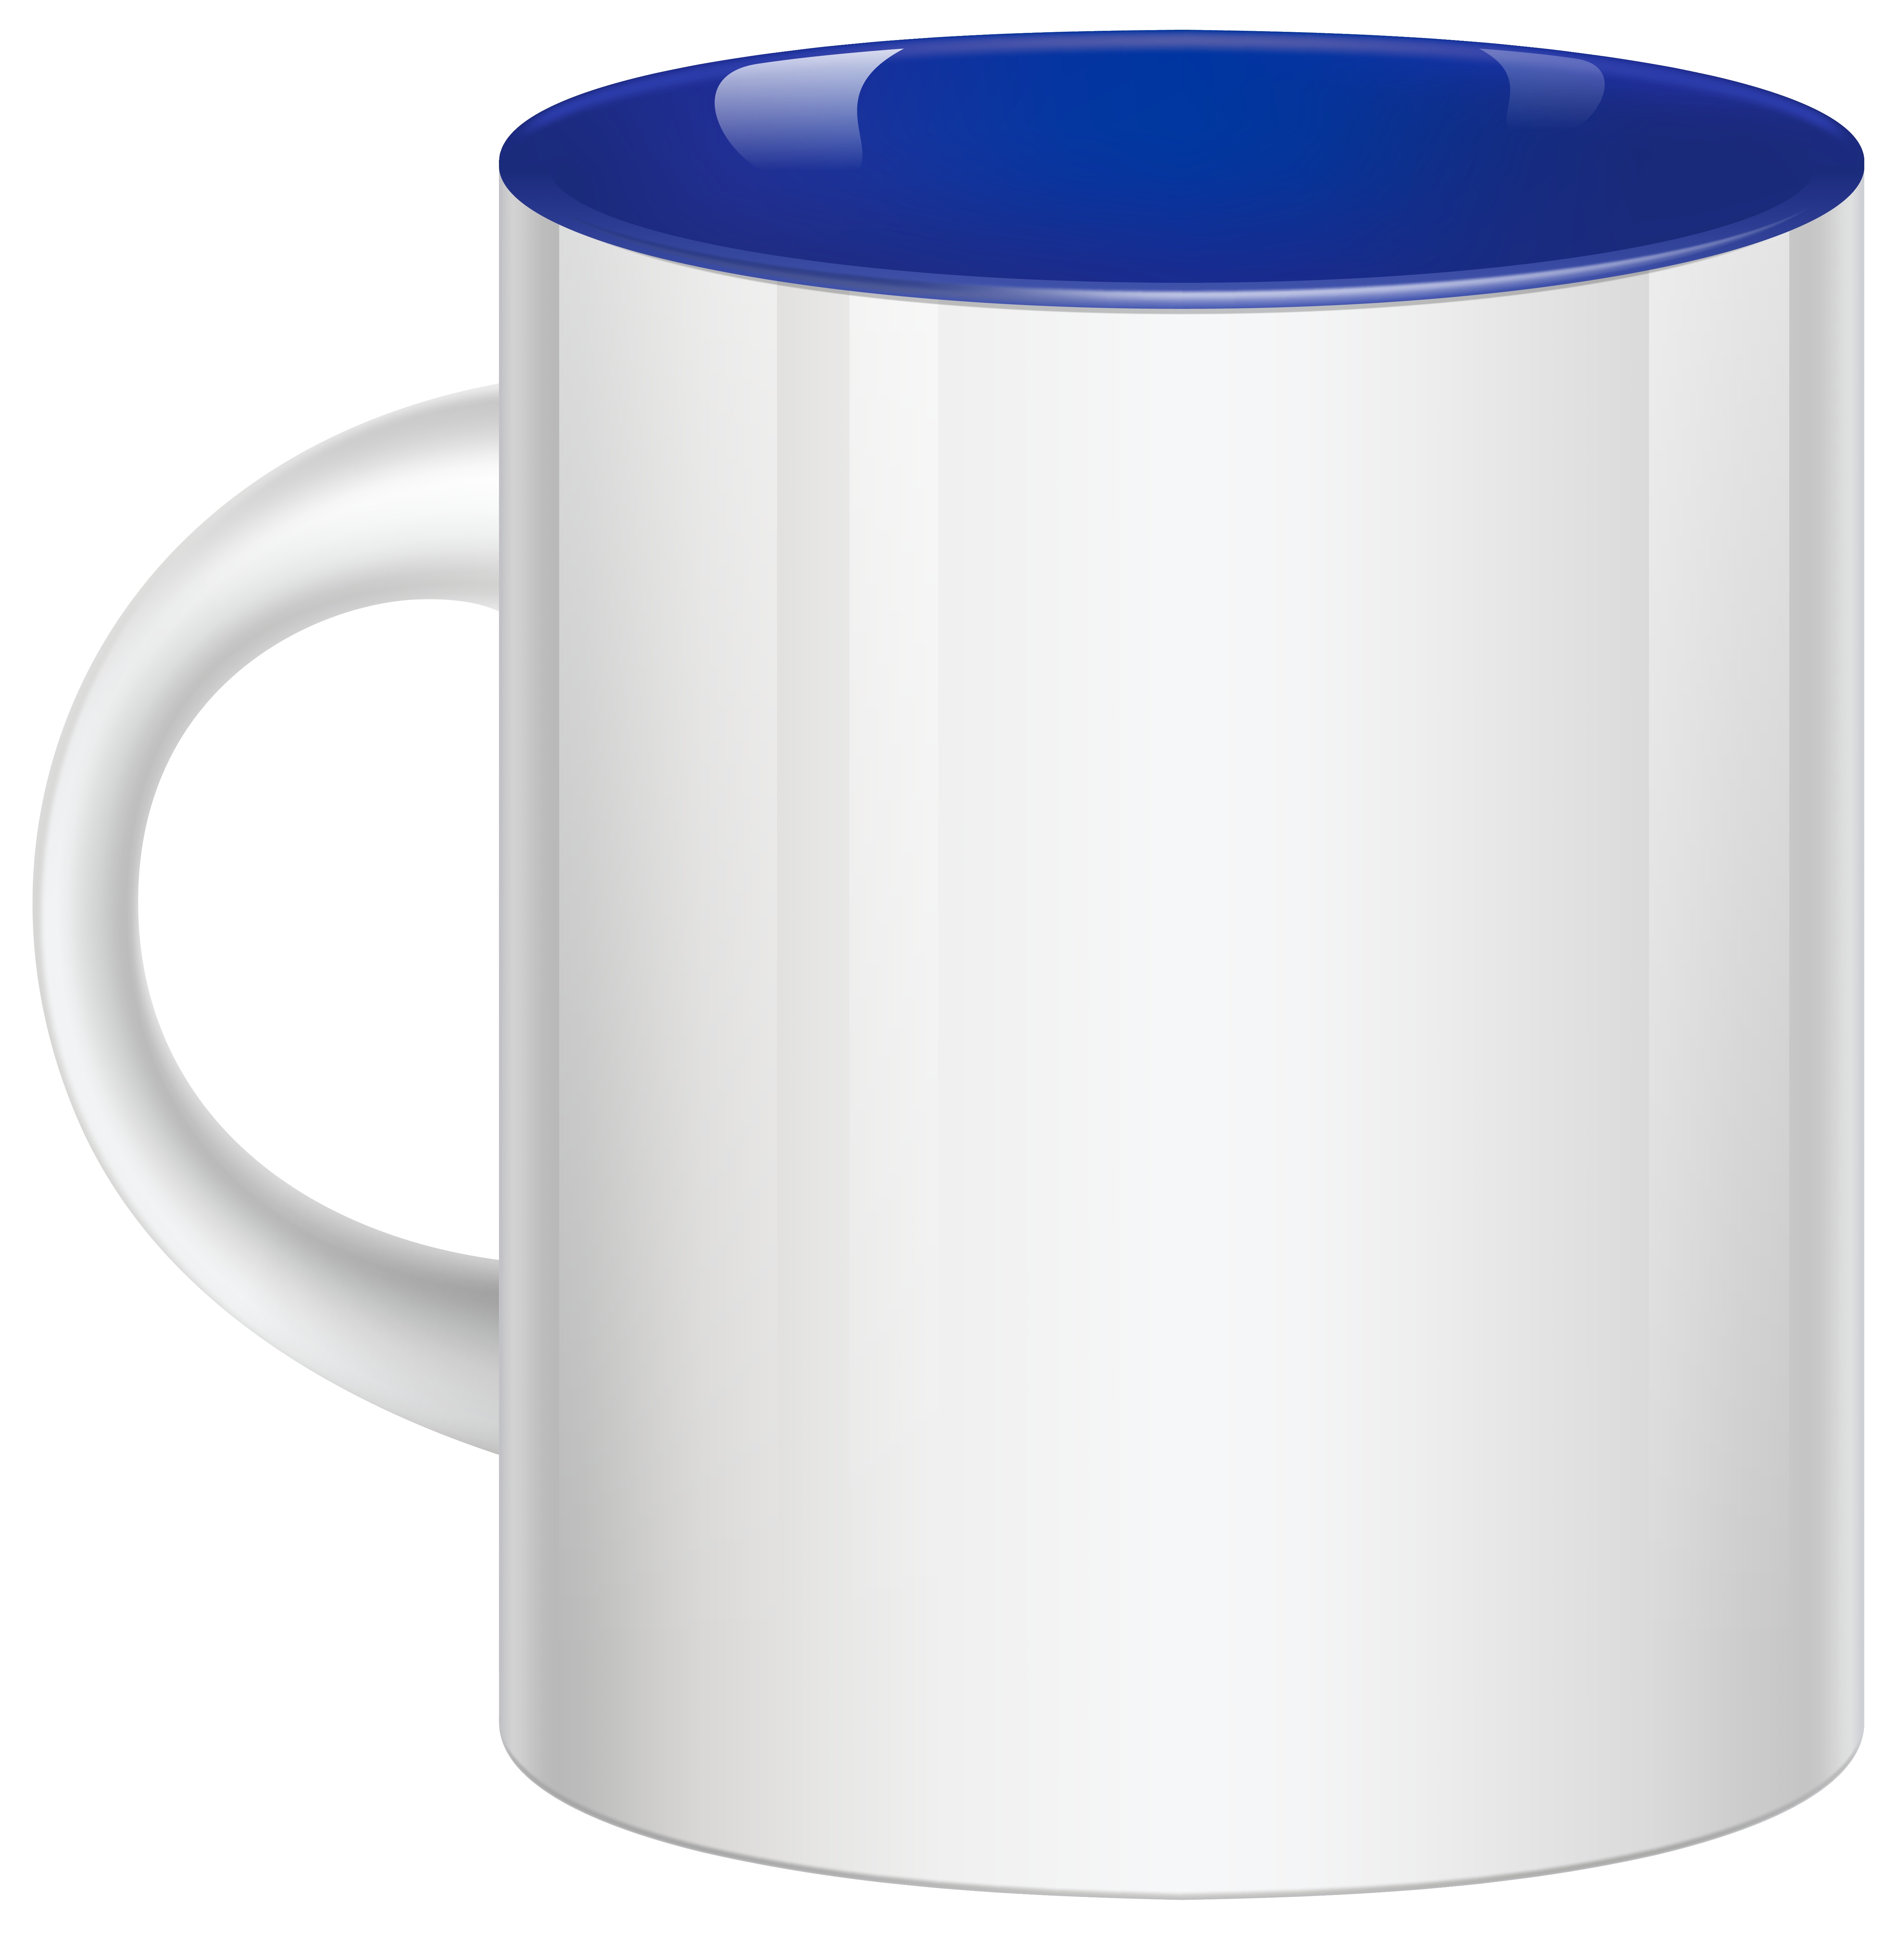 White blue cup png. Drink clipart hand holding